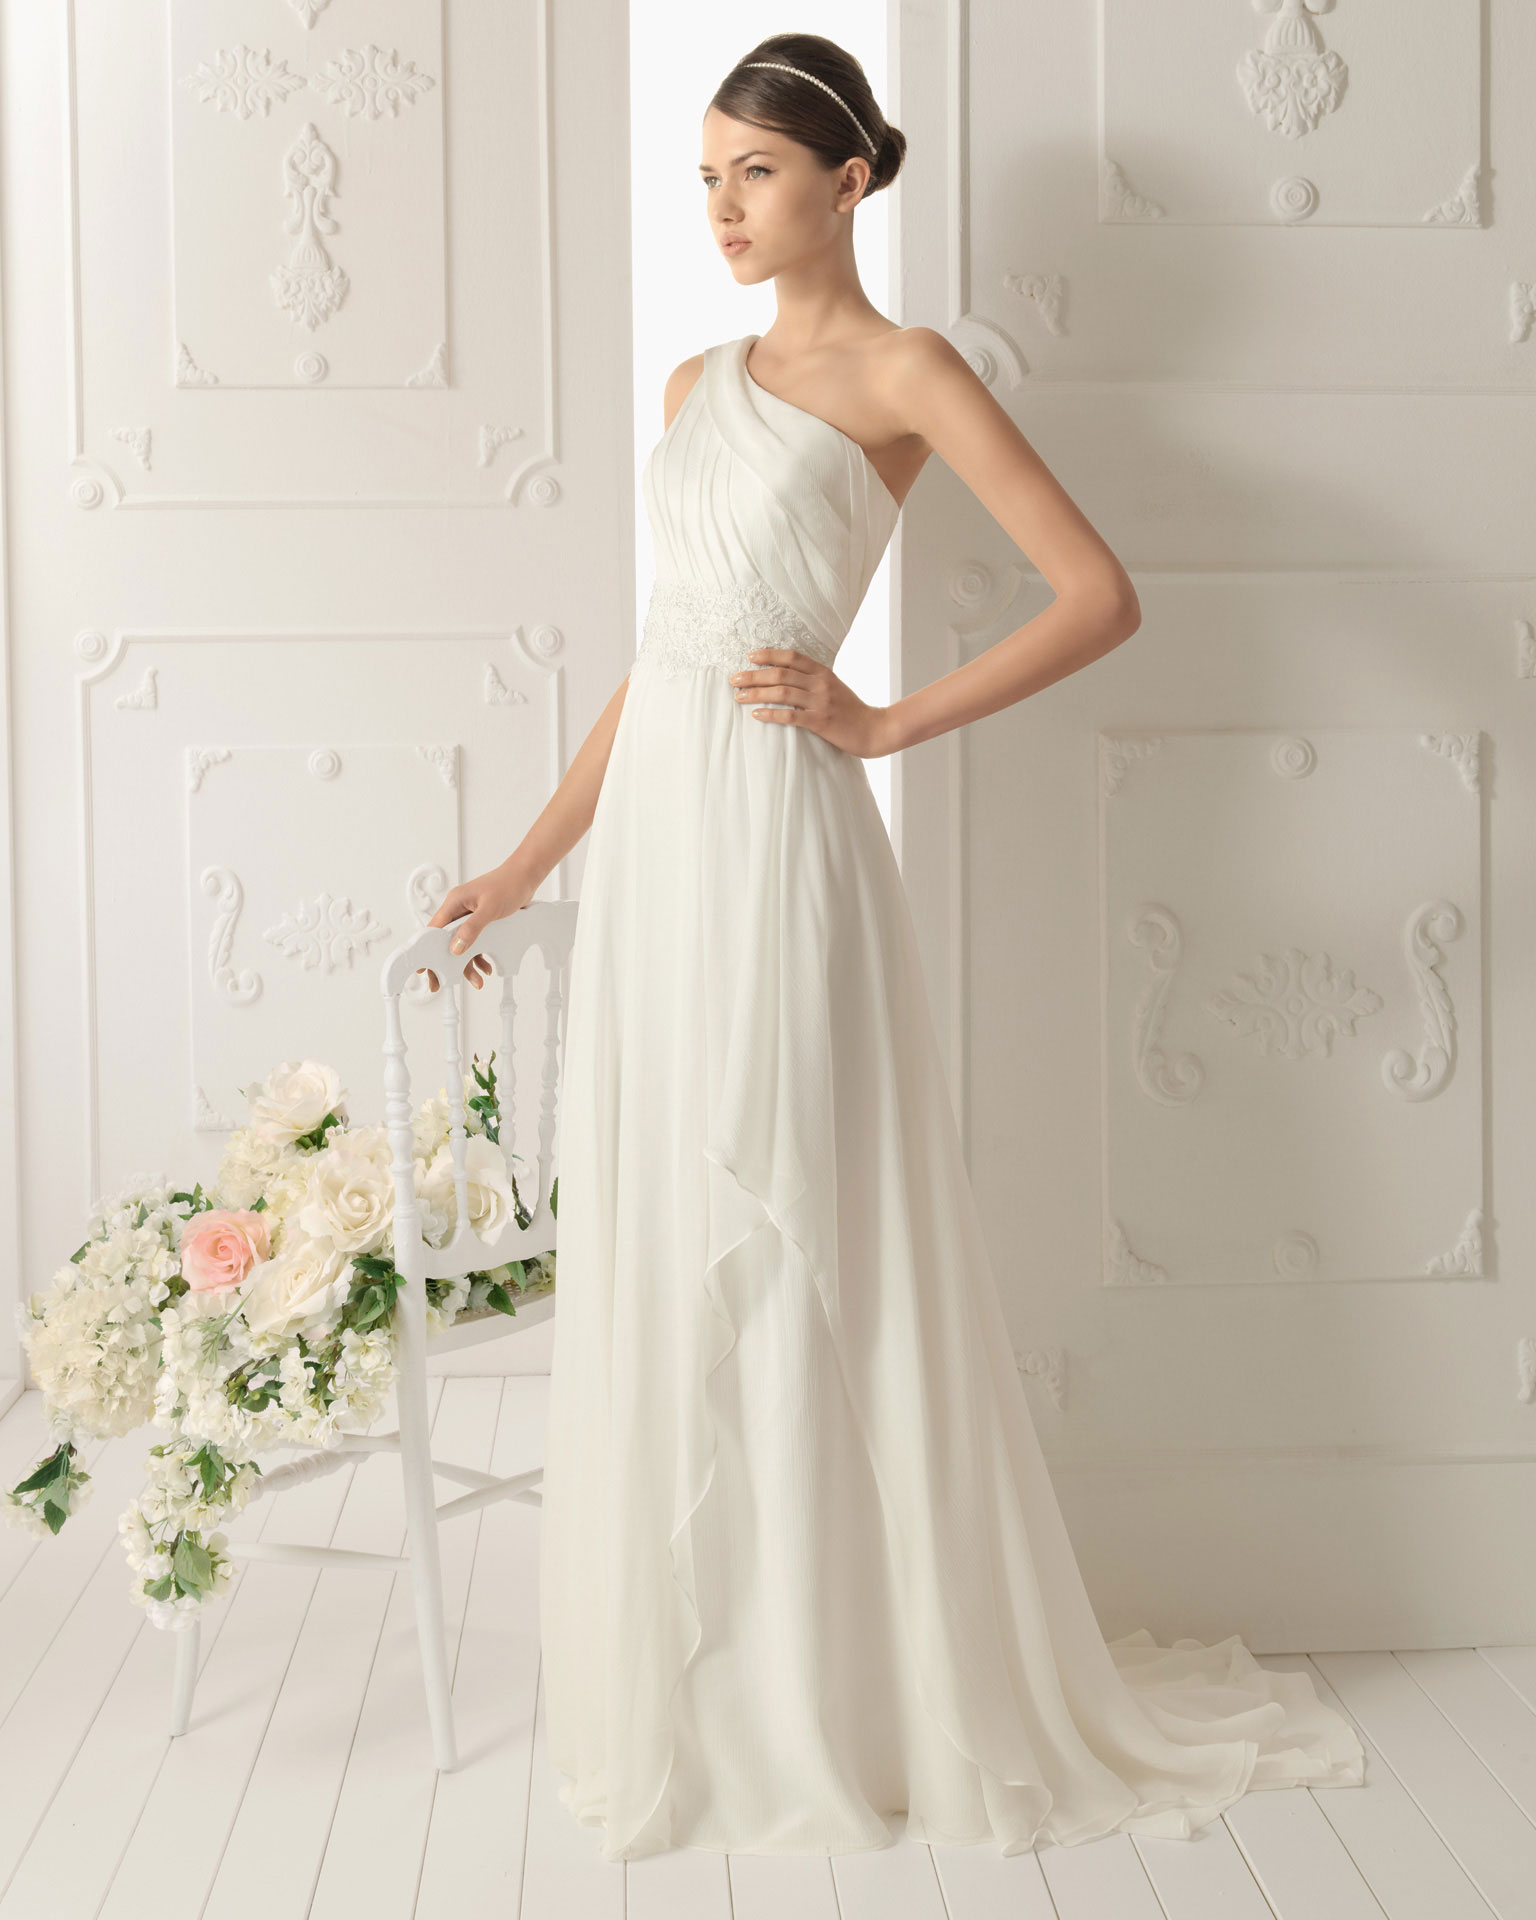 2013 wedding dress aire barcelona bridal gowns remir for Wedding dresses in barcelona spain